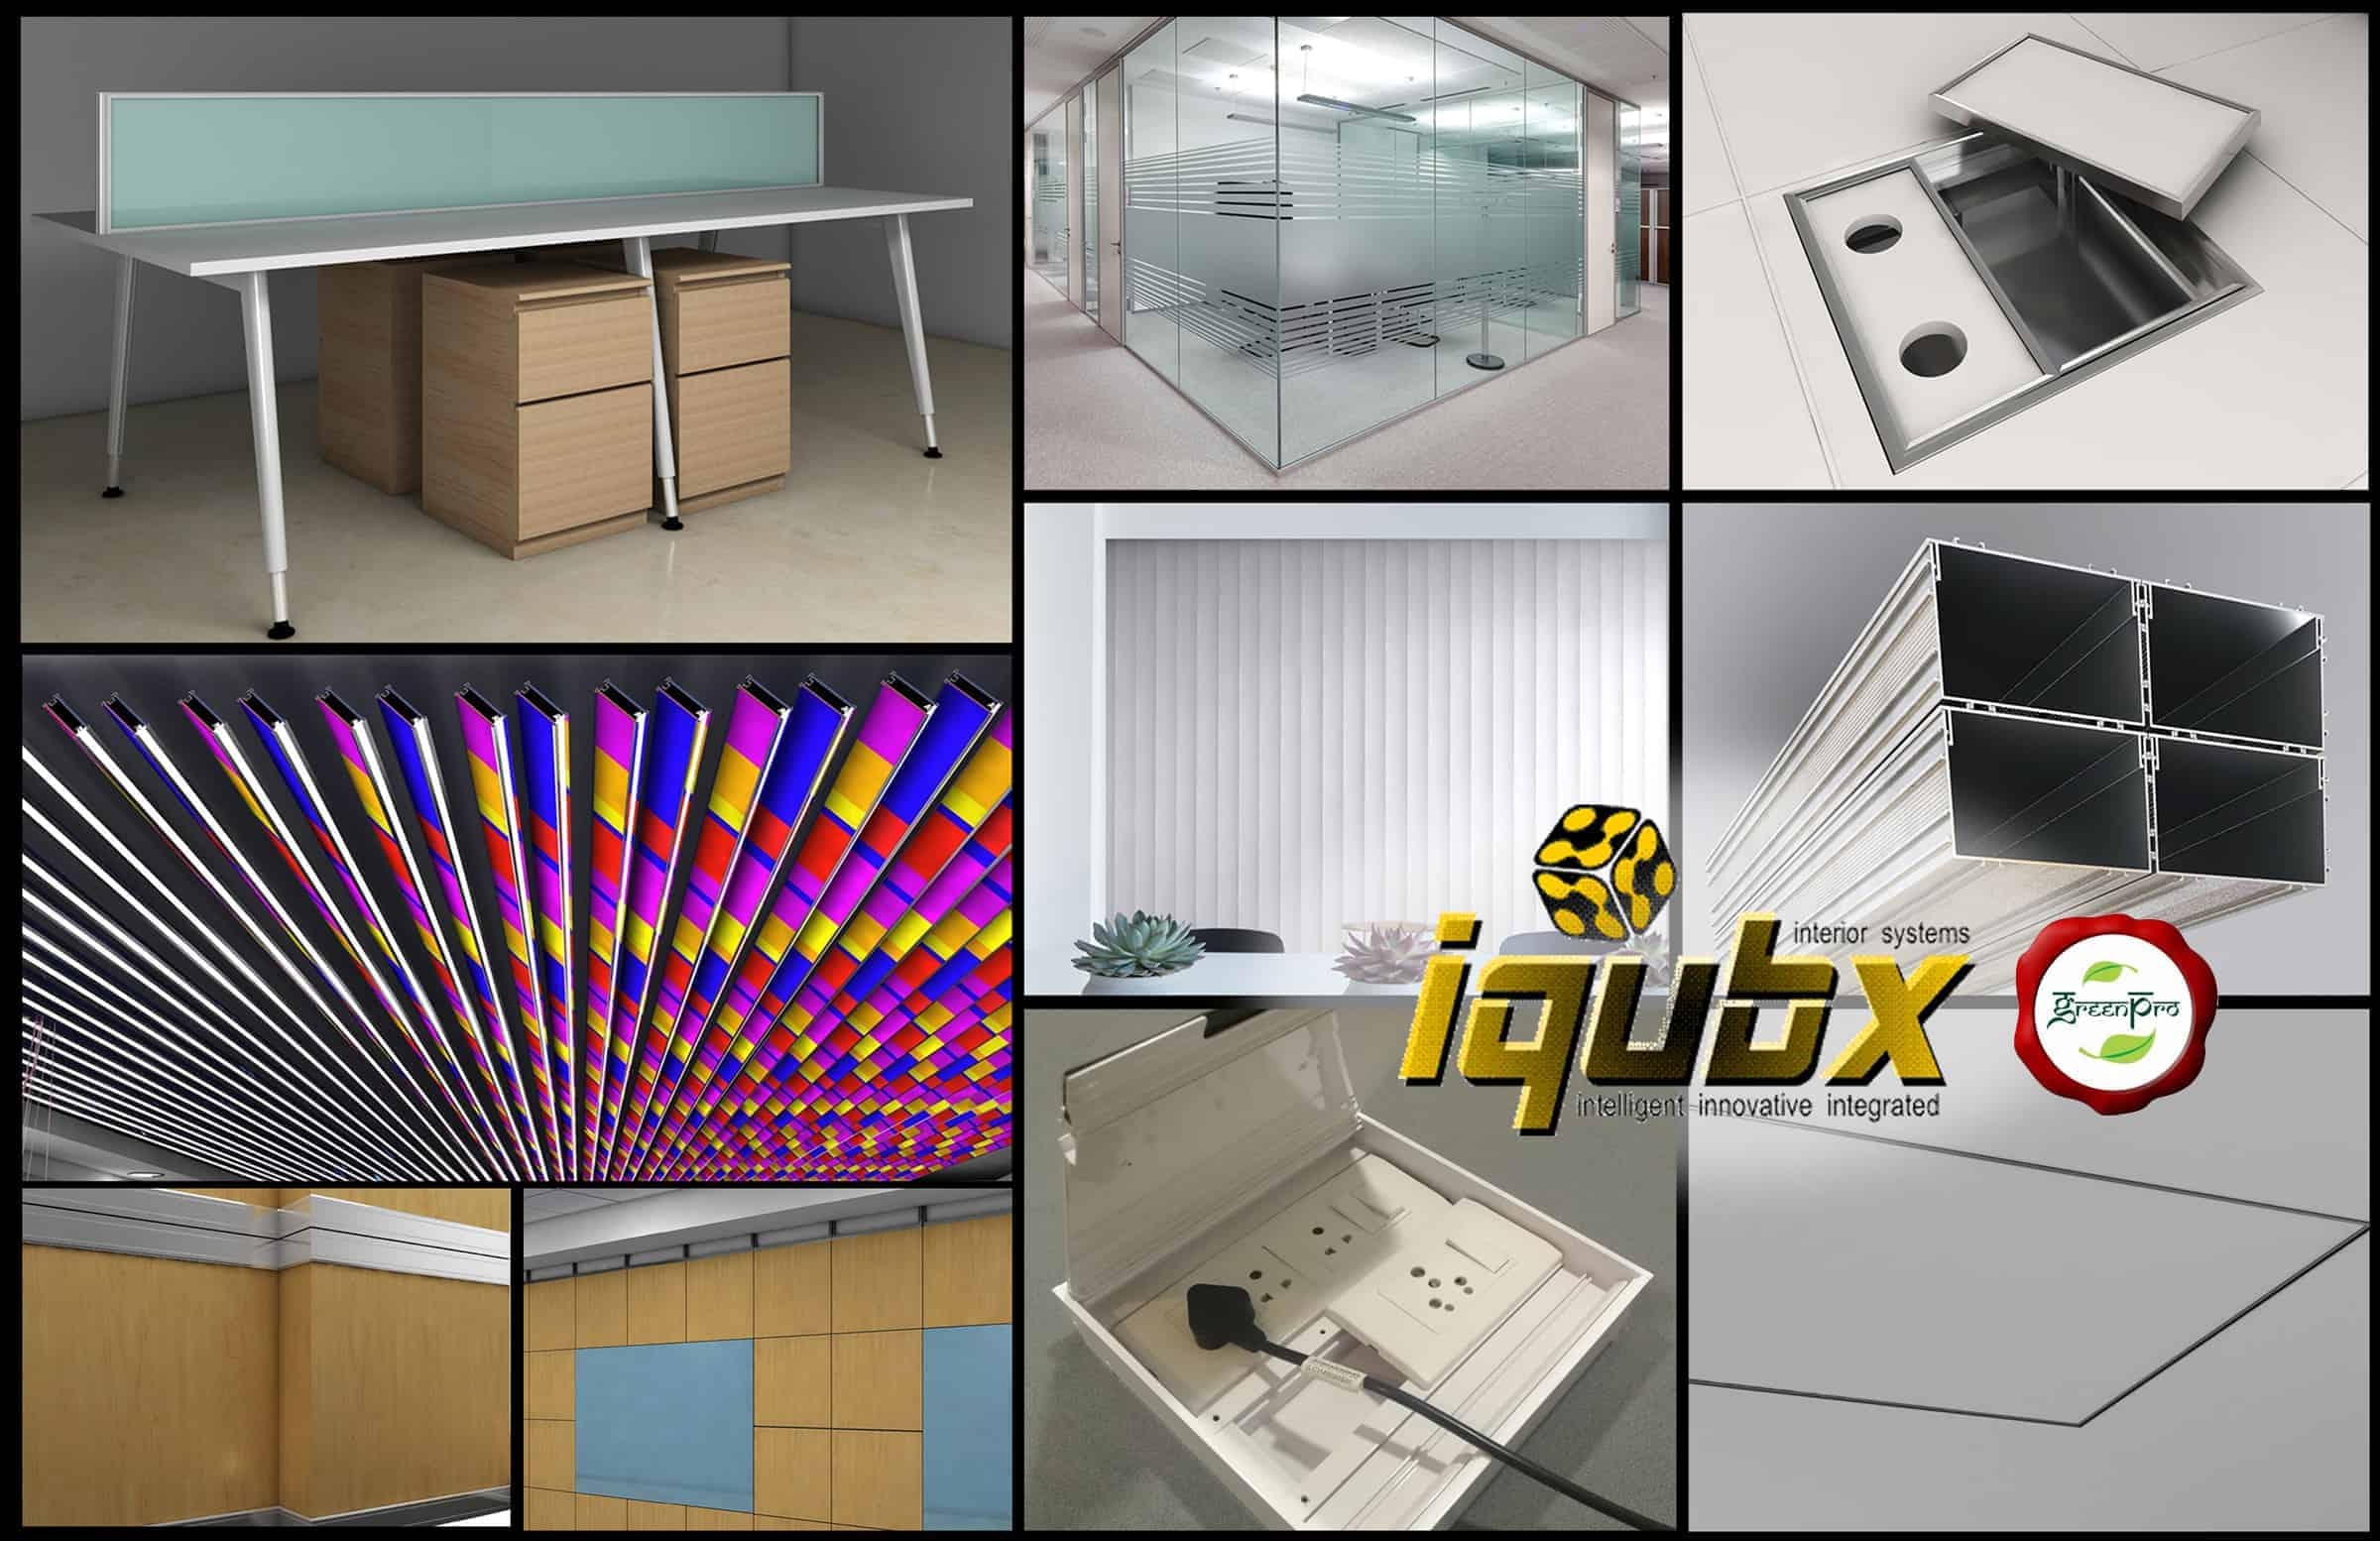 iqubx product collage published in buildotech magazine